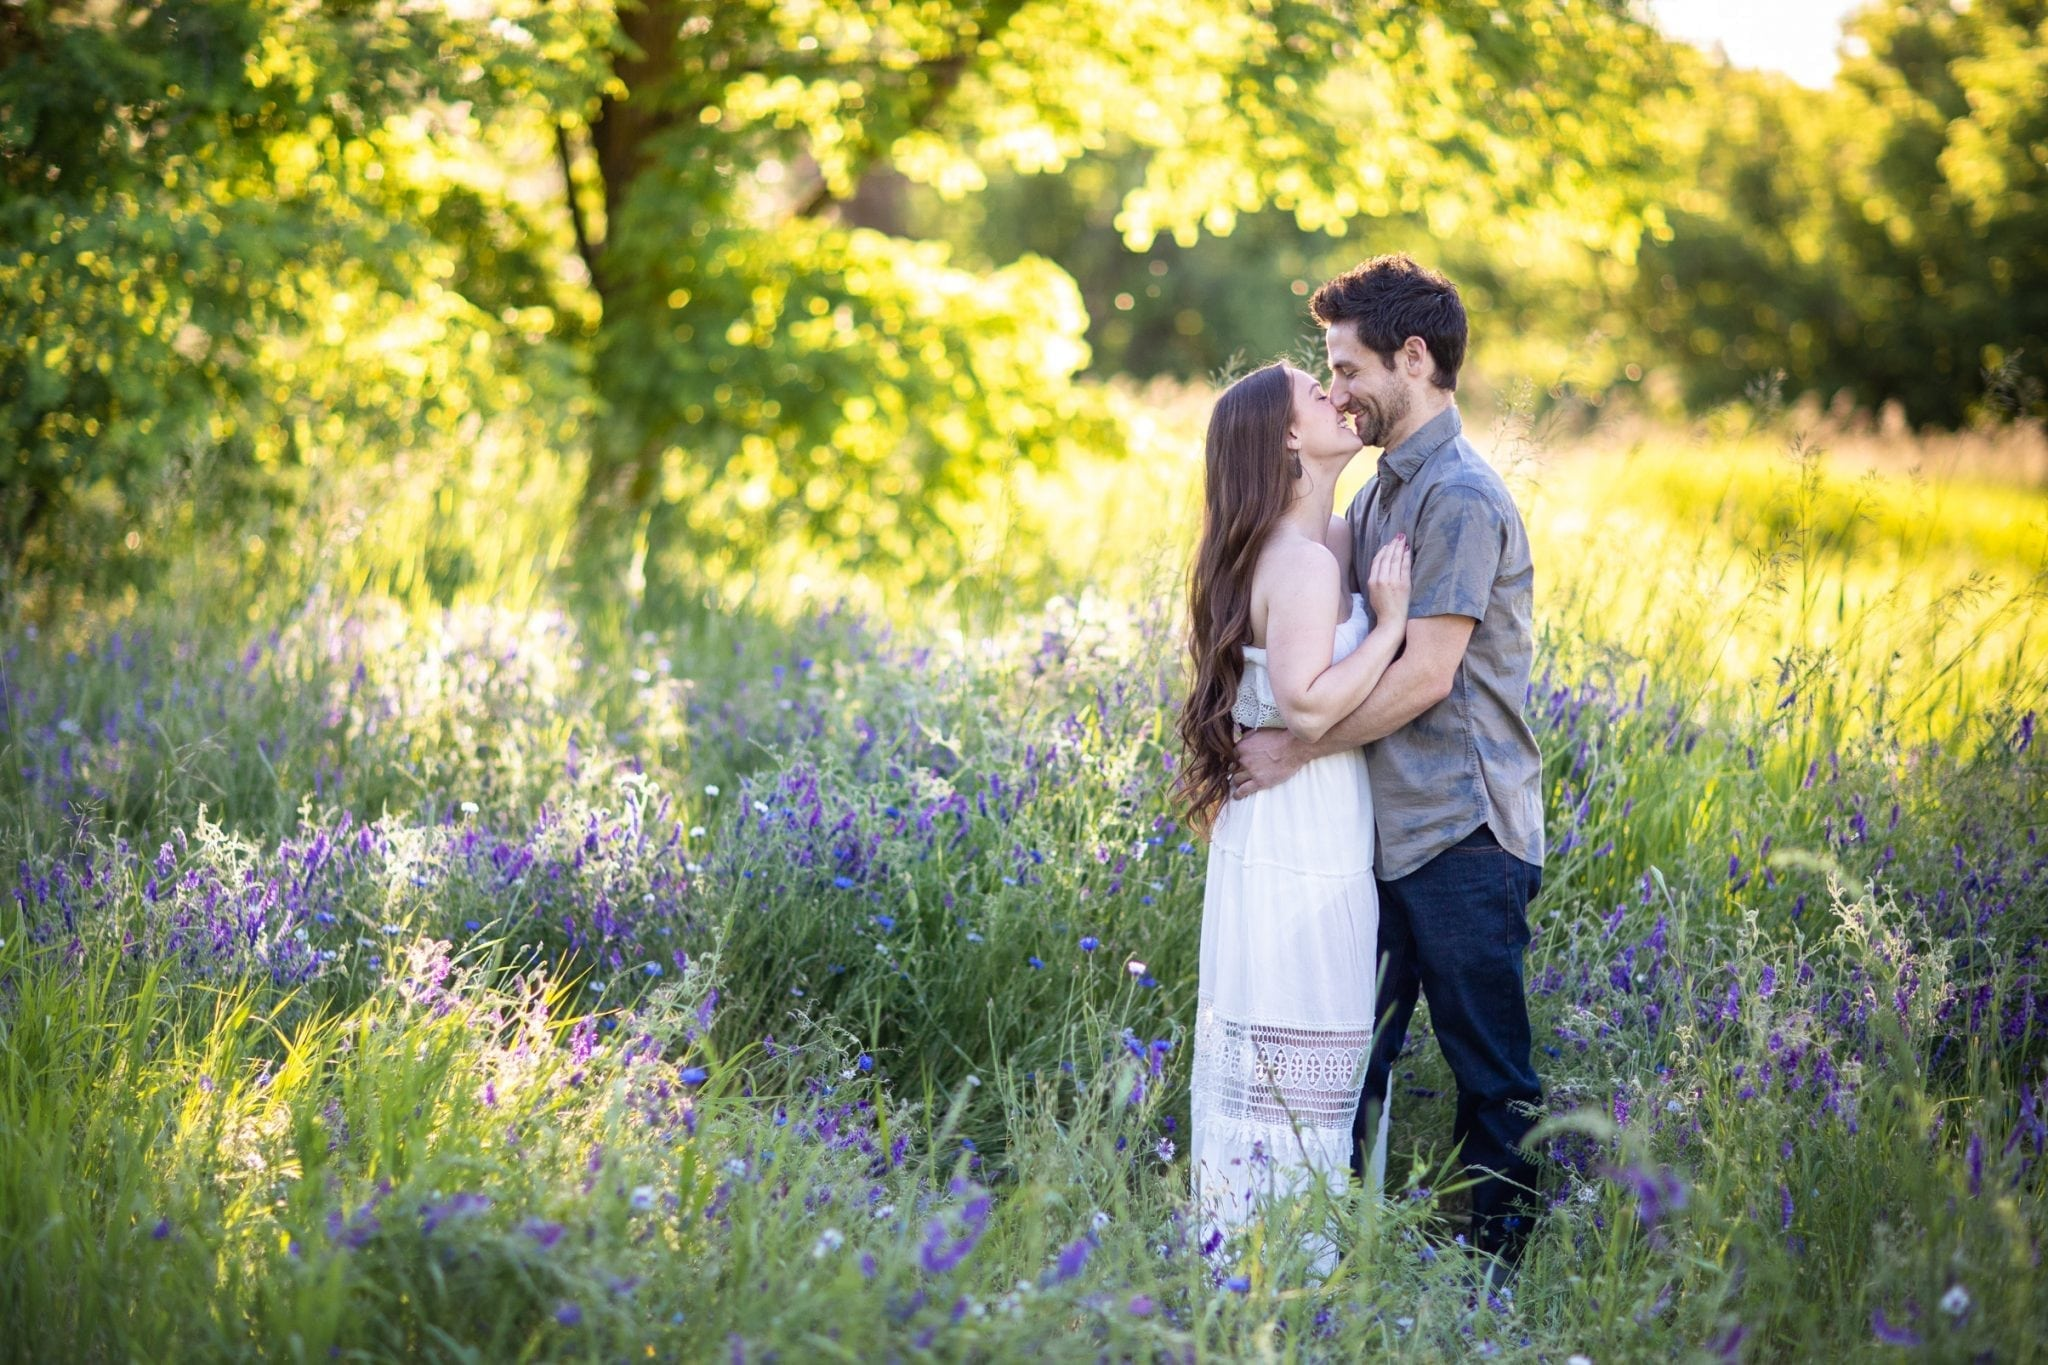 Romantic engagment session in country